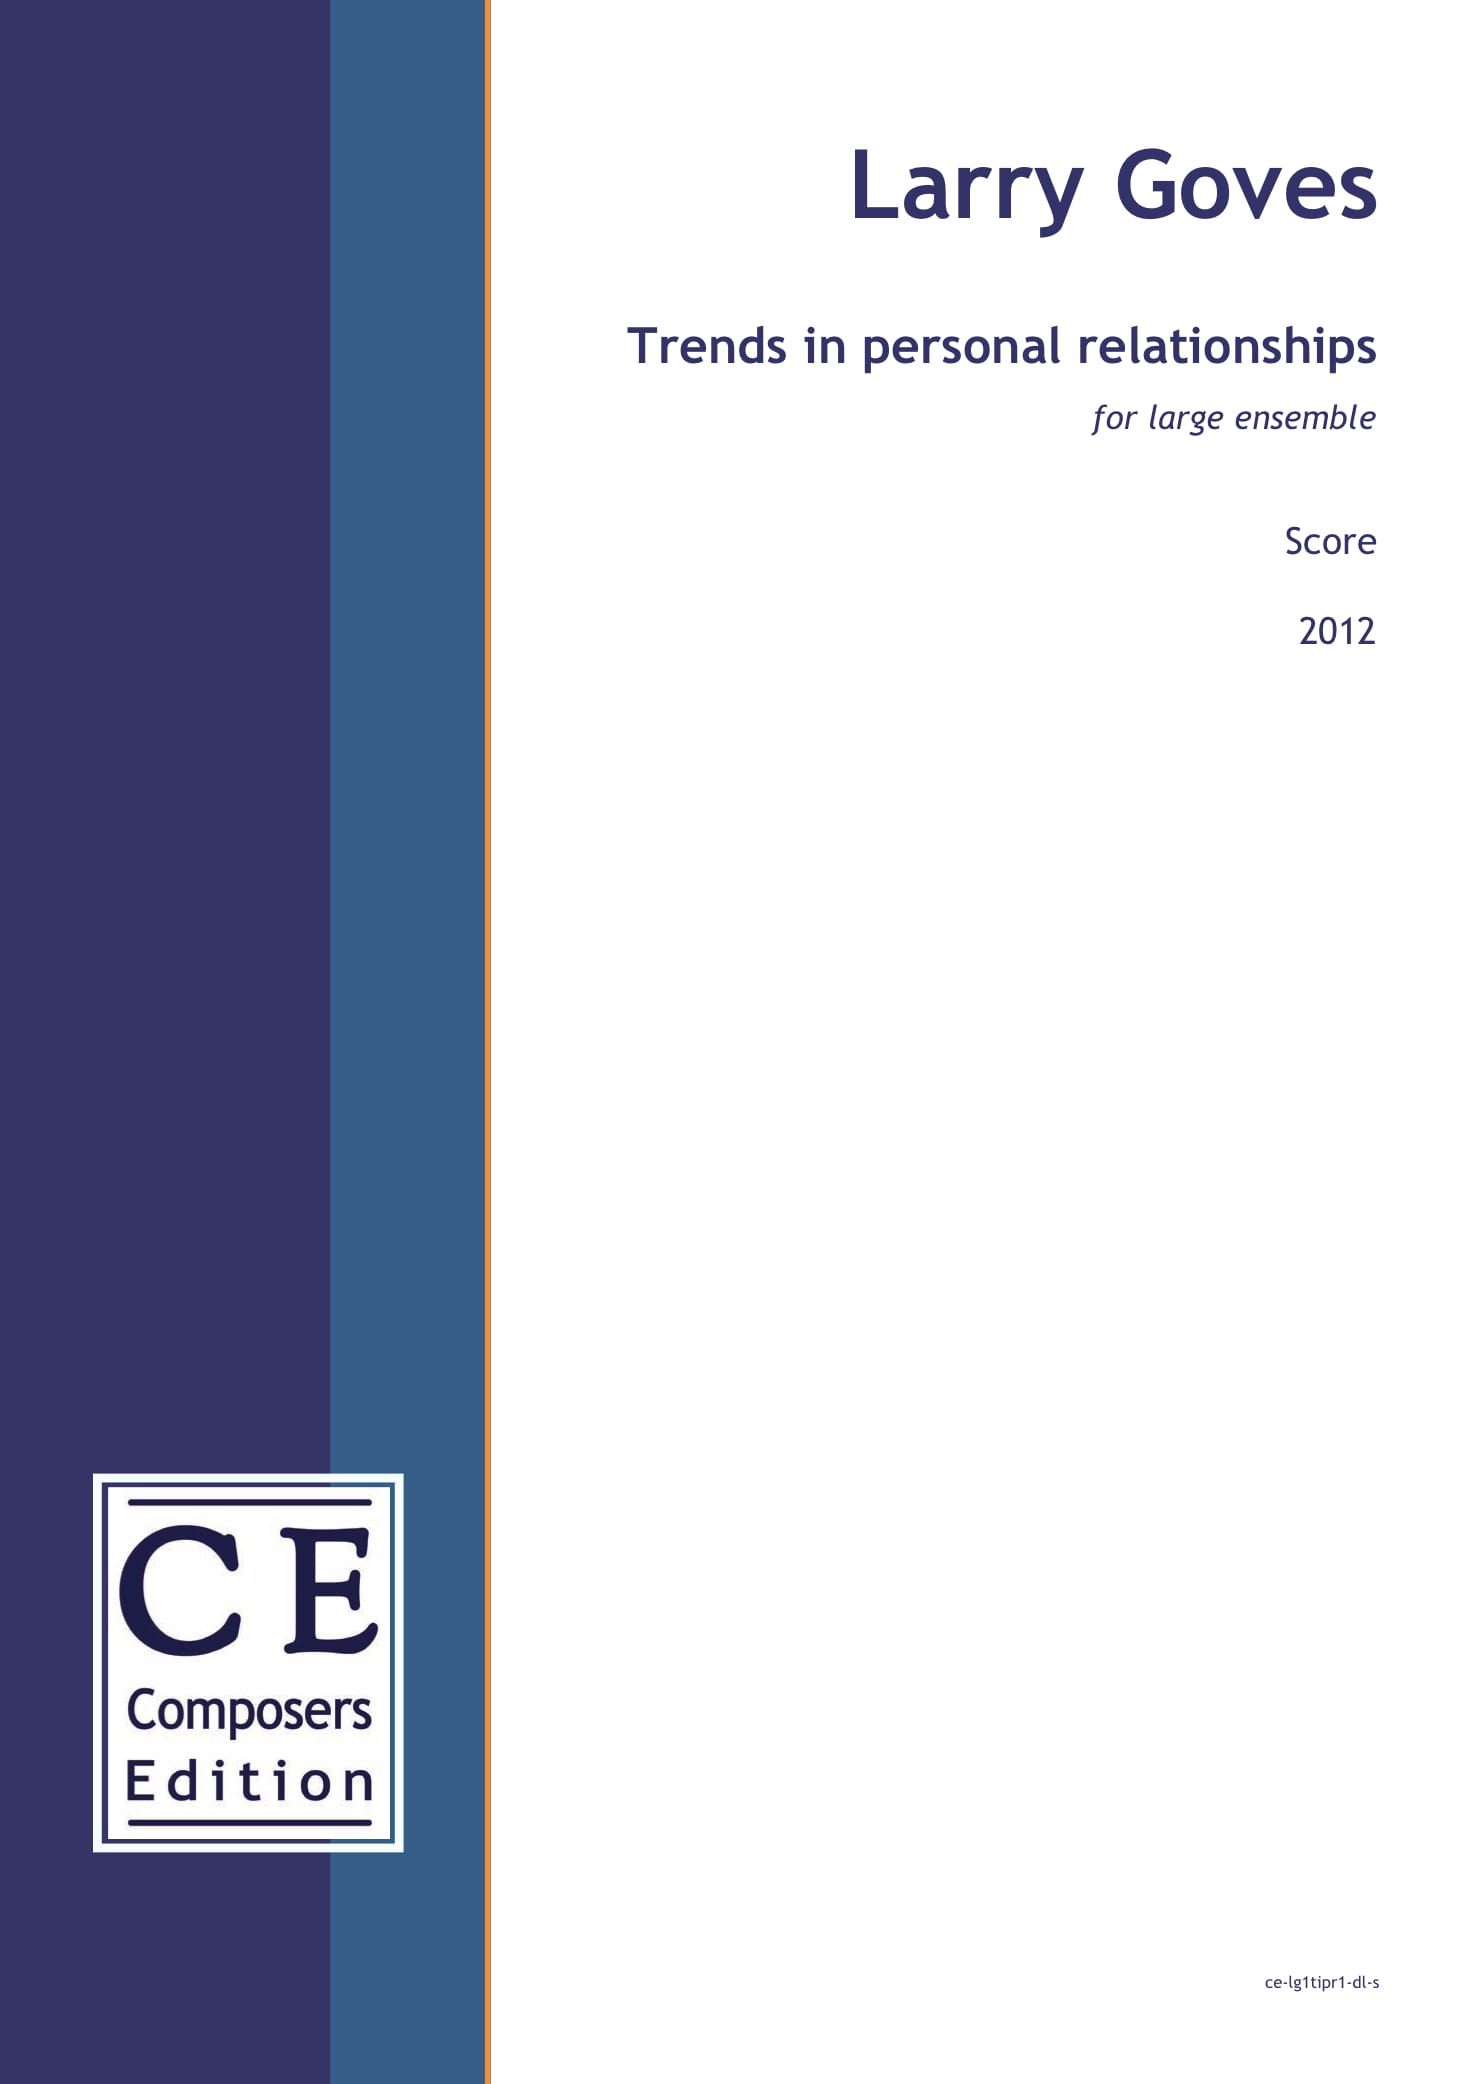 Larry Goves: Trends in personal relationships for large ensemble